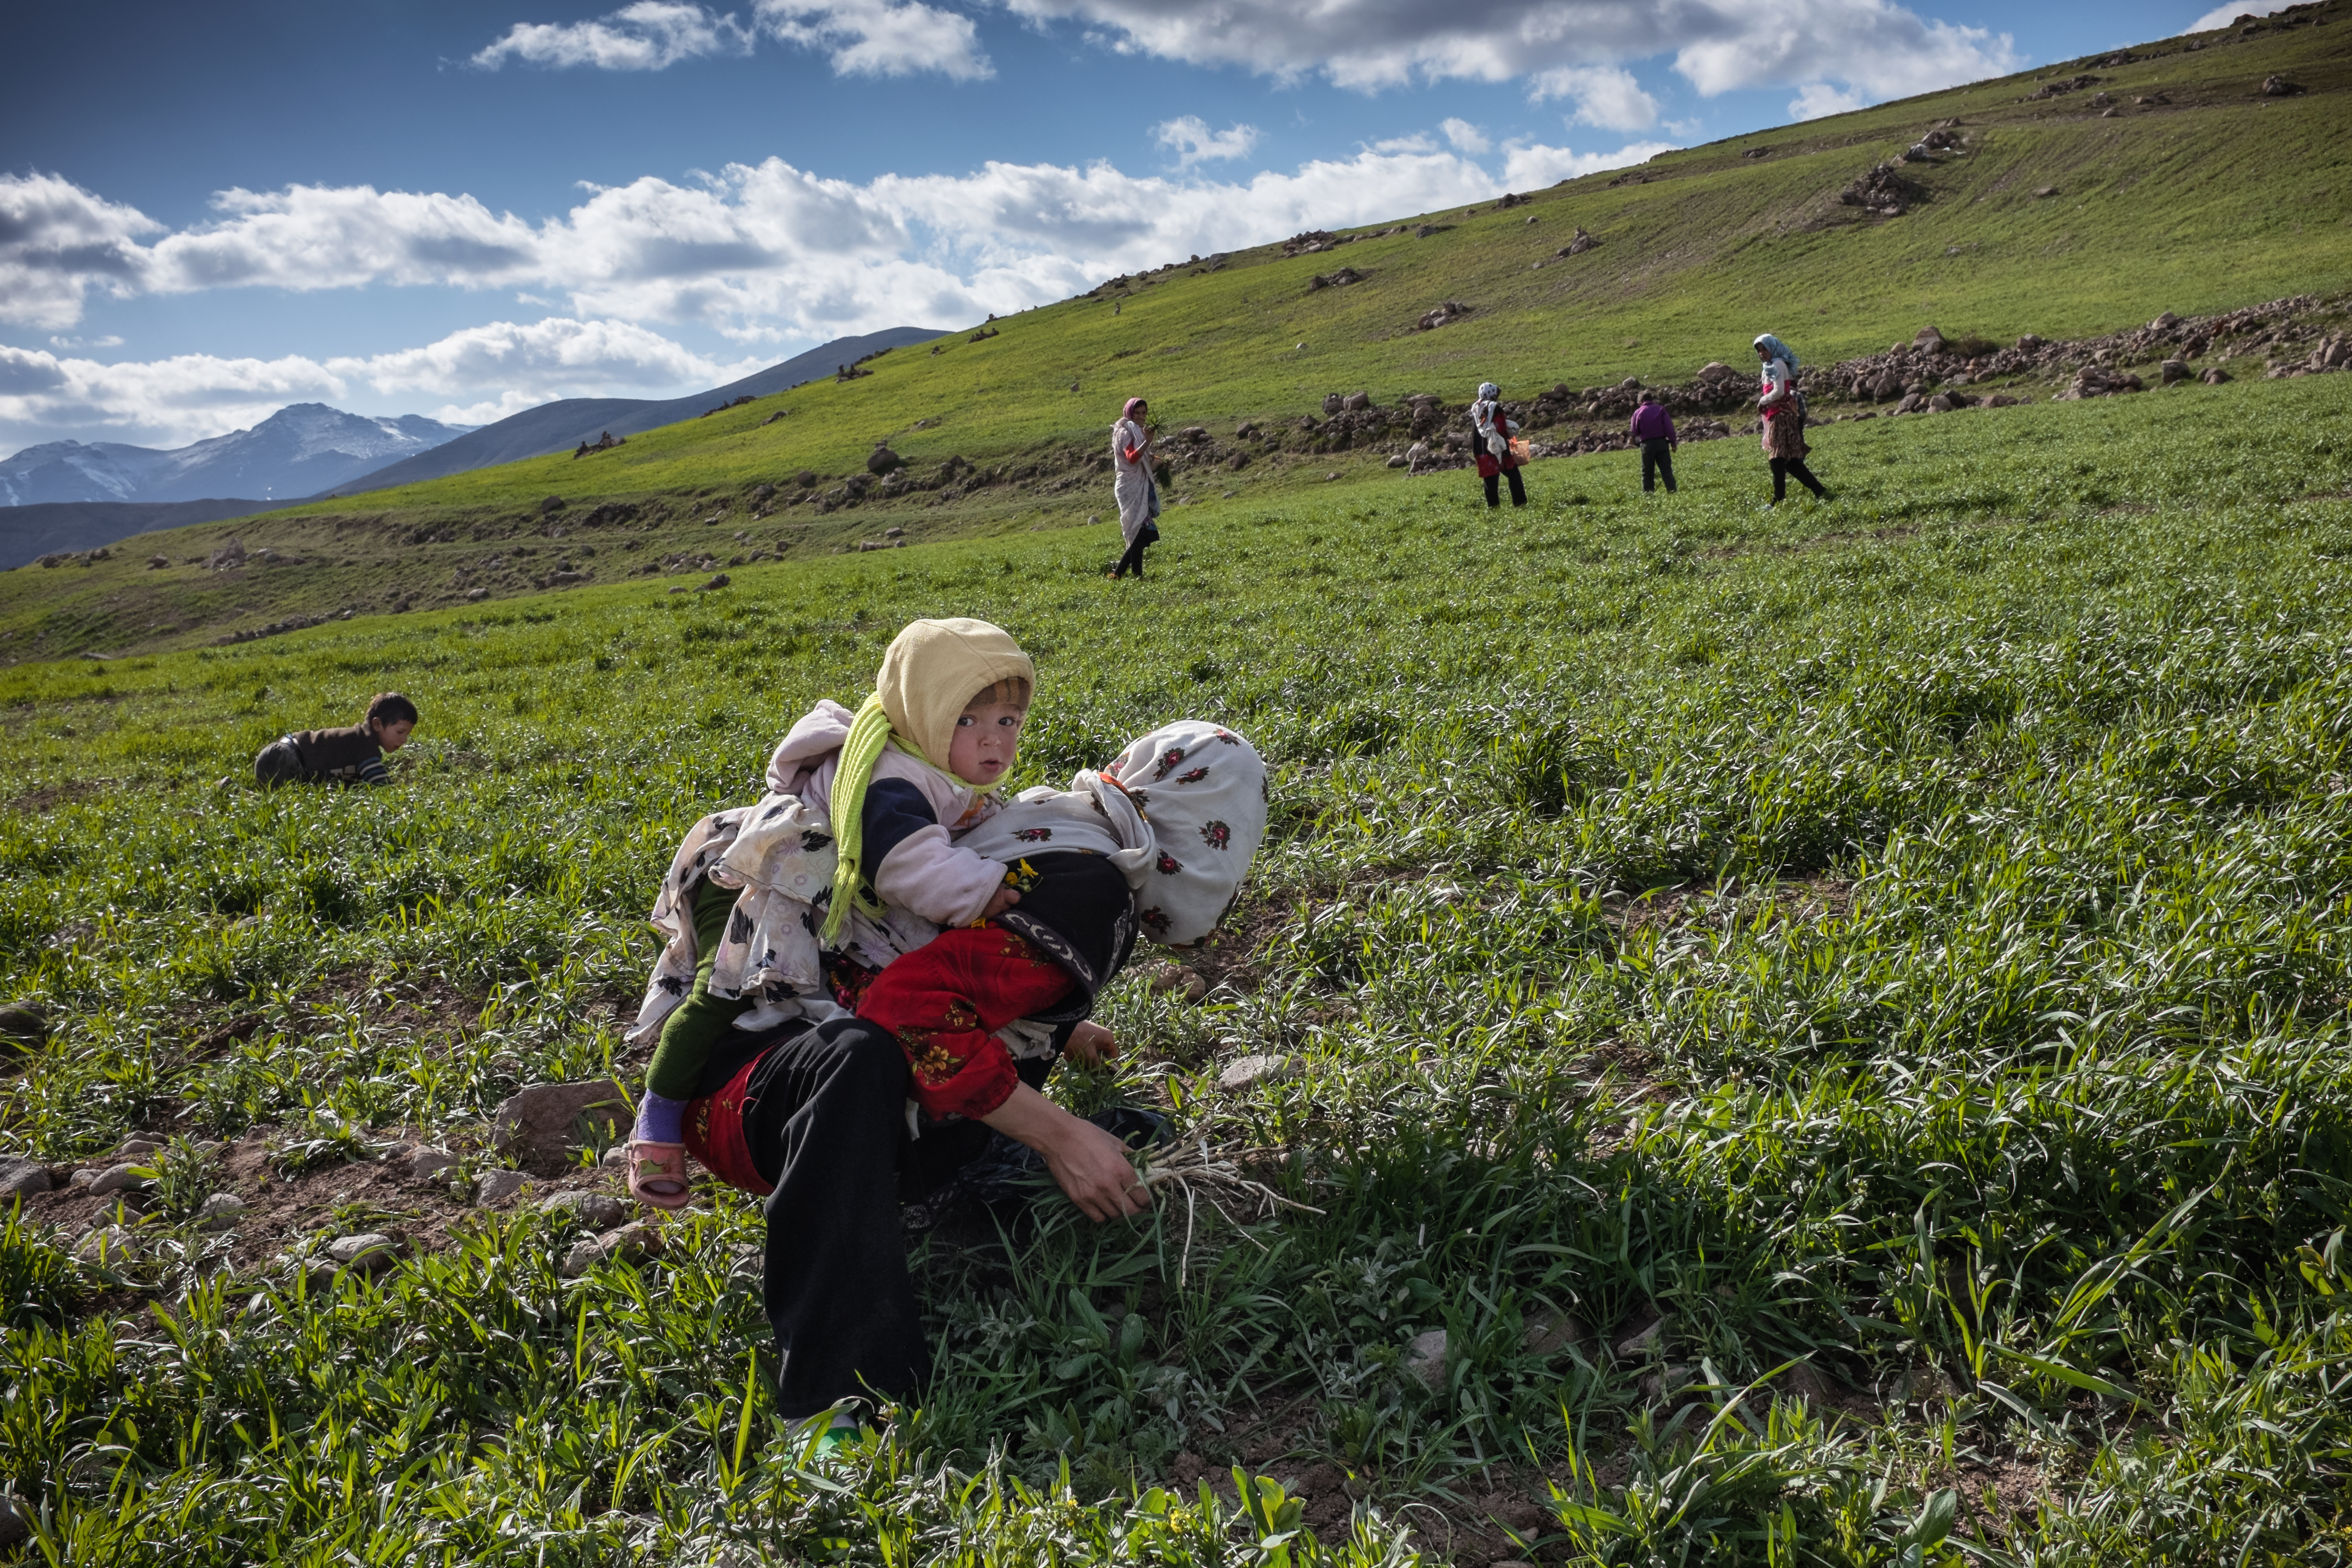 Roghayyeh with her nephew on her back while picking herbs in the fields outside the village. Ajabshir, East Azerbaijan, Iran.